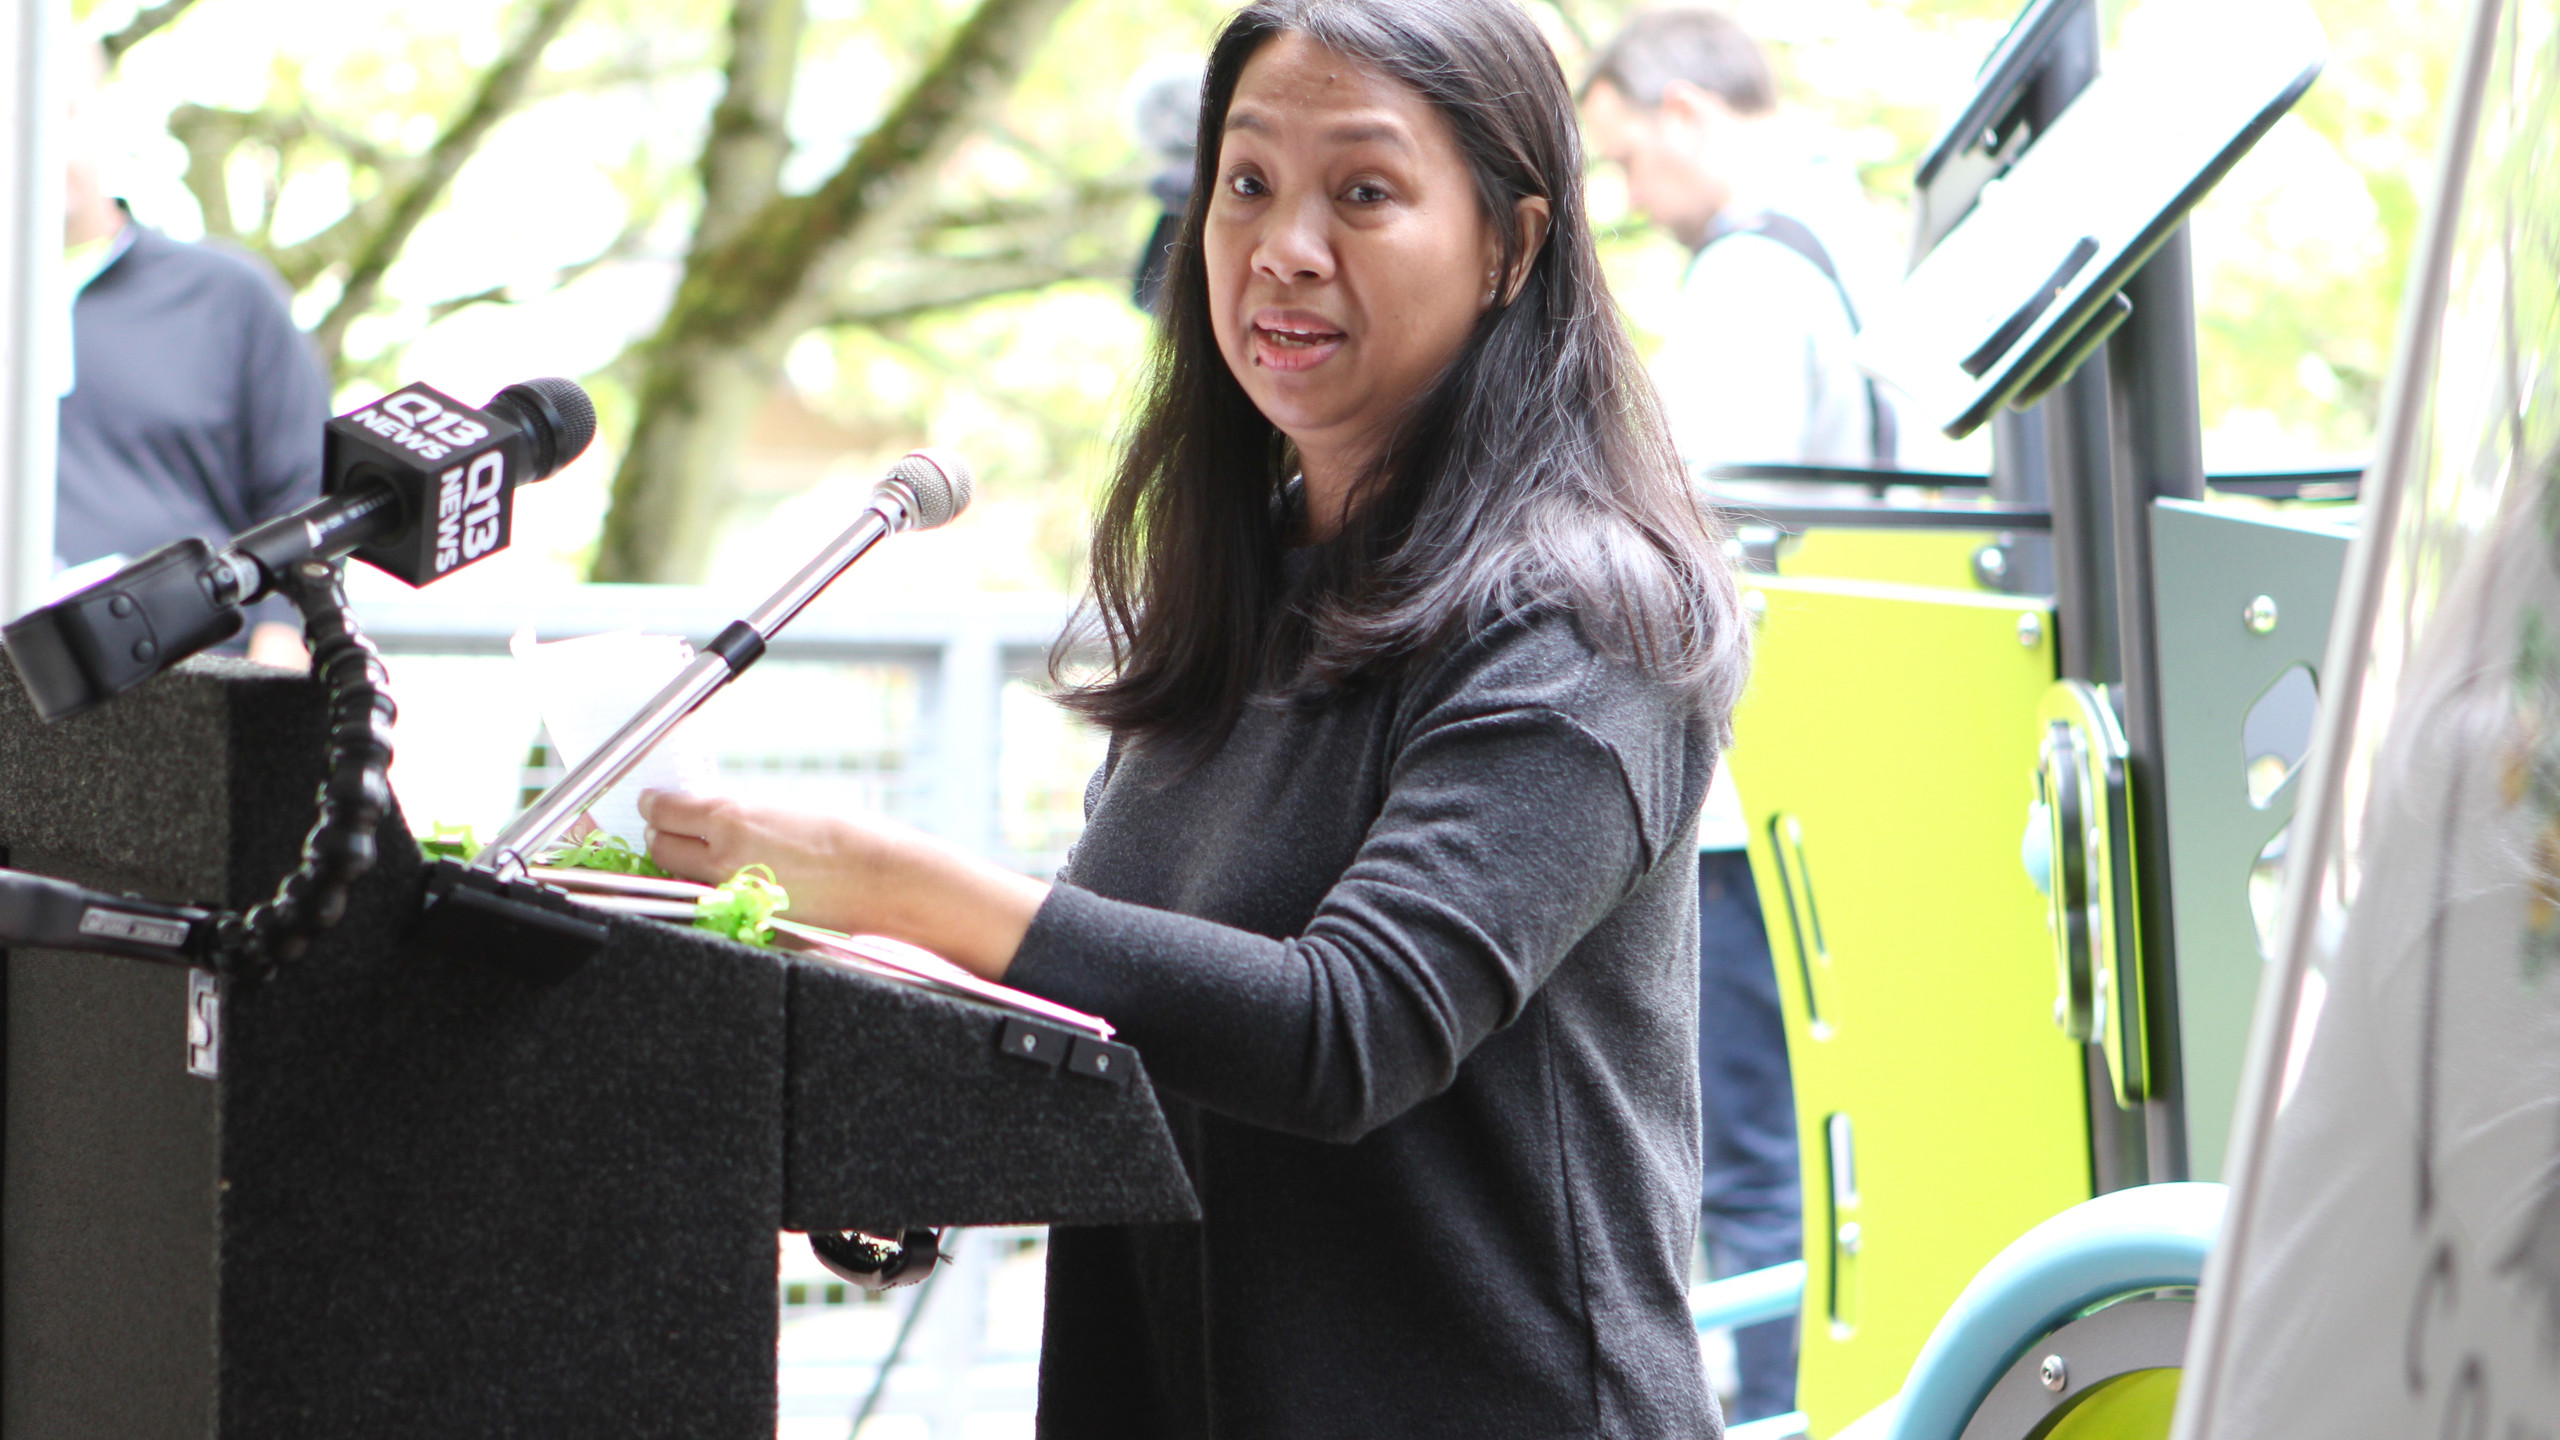 Elizabeth Soriano, a resident of Bellwether's Bellevue Olive Apartments, speaks at the opening celebration of Arbora Court.